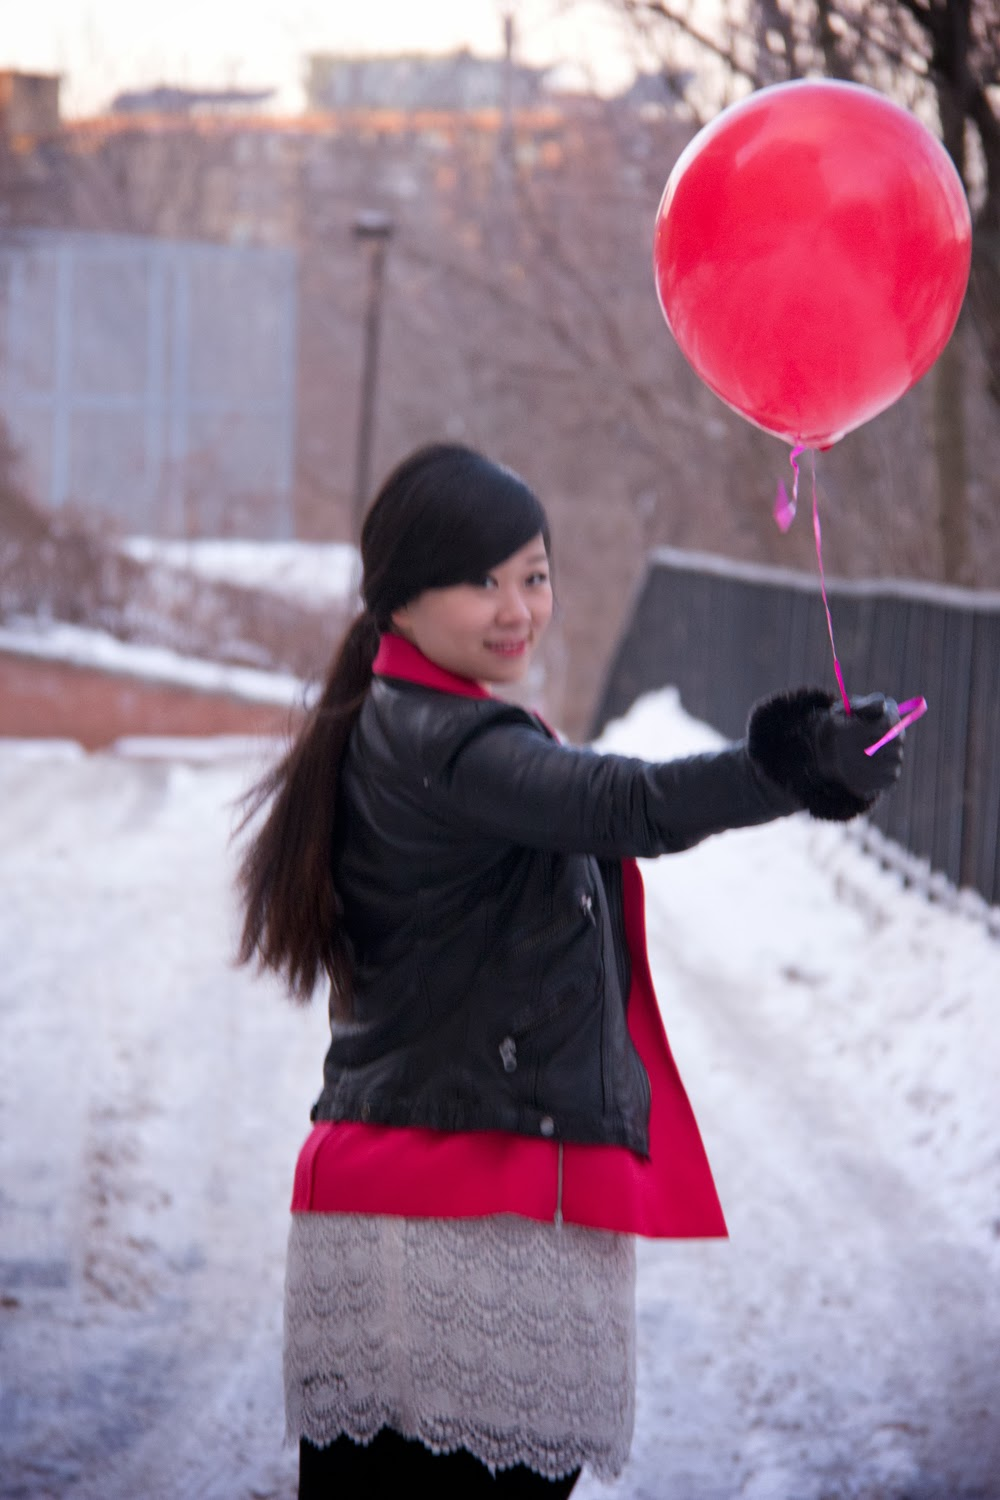 Red-Balloon, Black-Leather-Jacket, Pink-Blazer, Fashion-Blogger